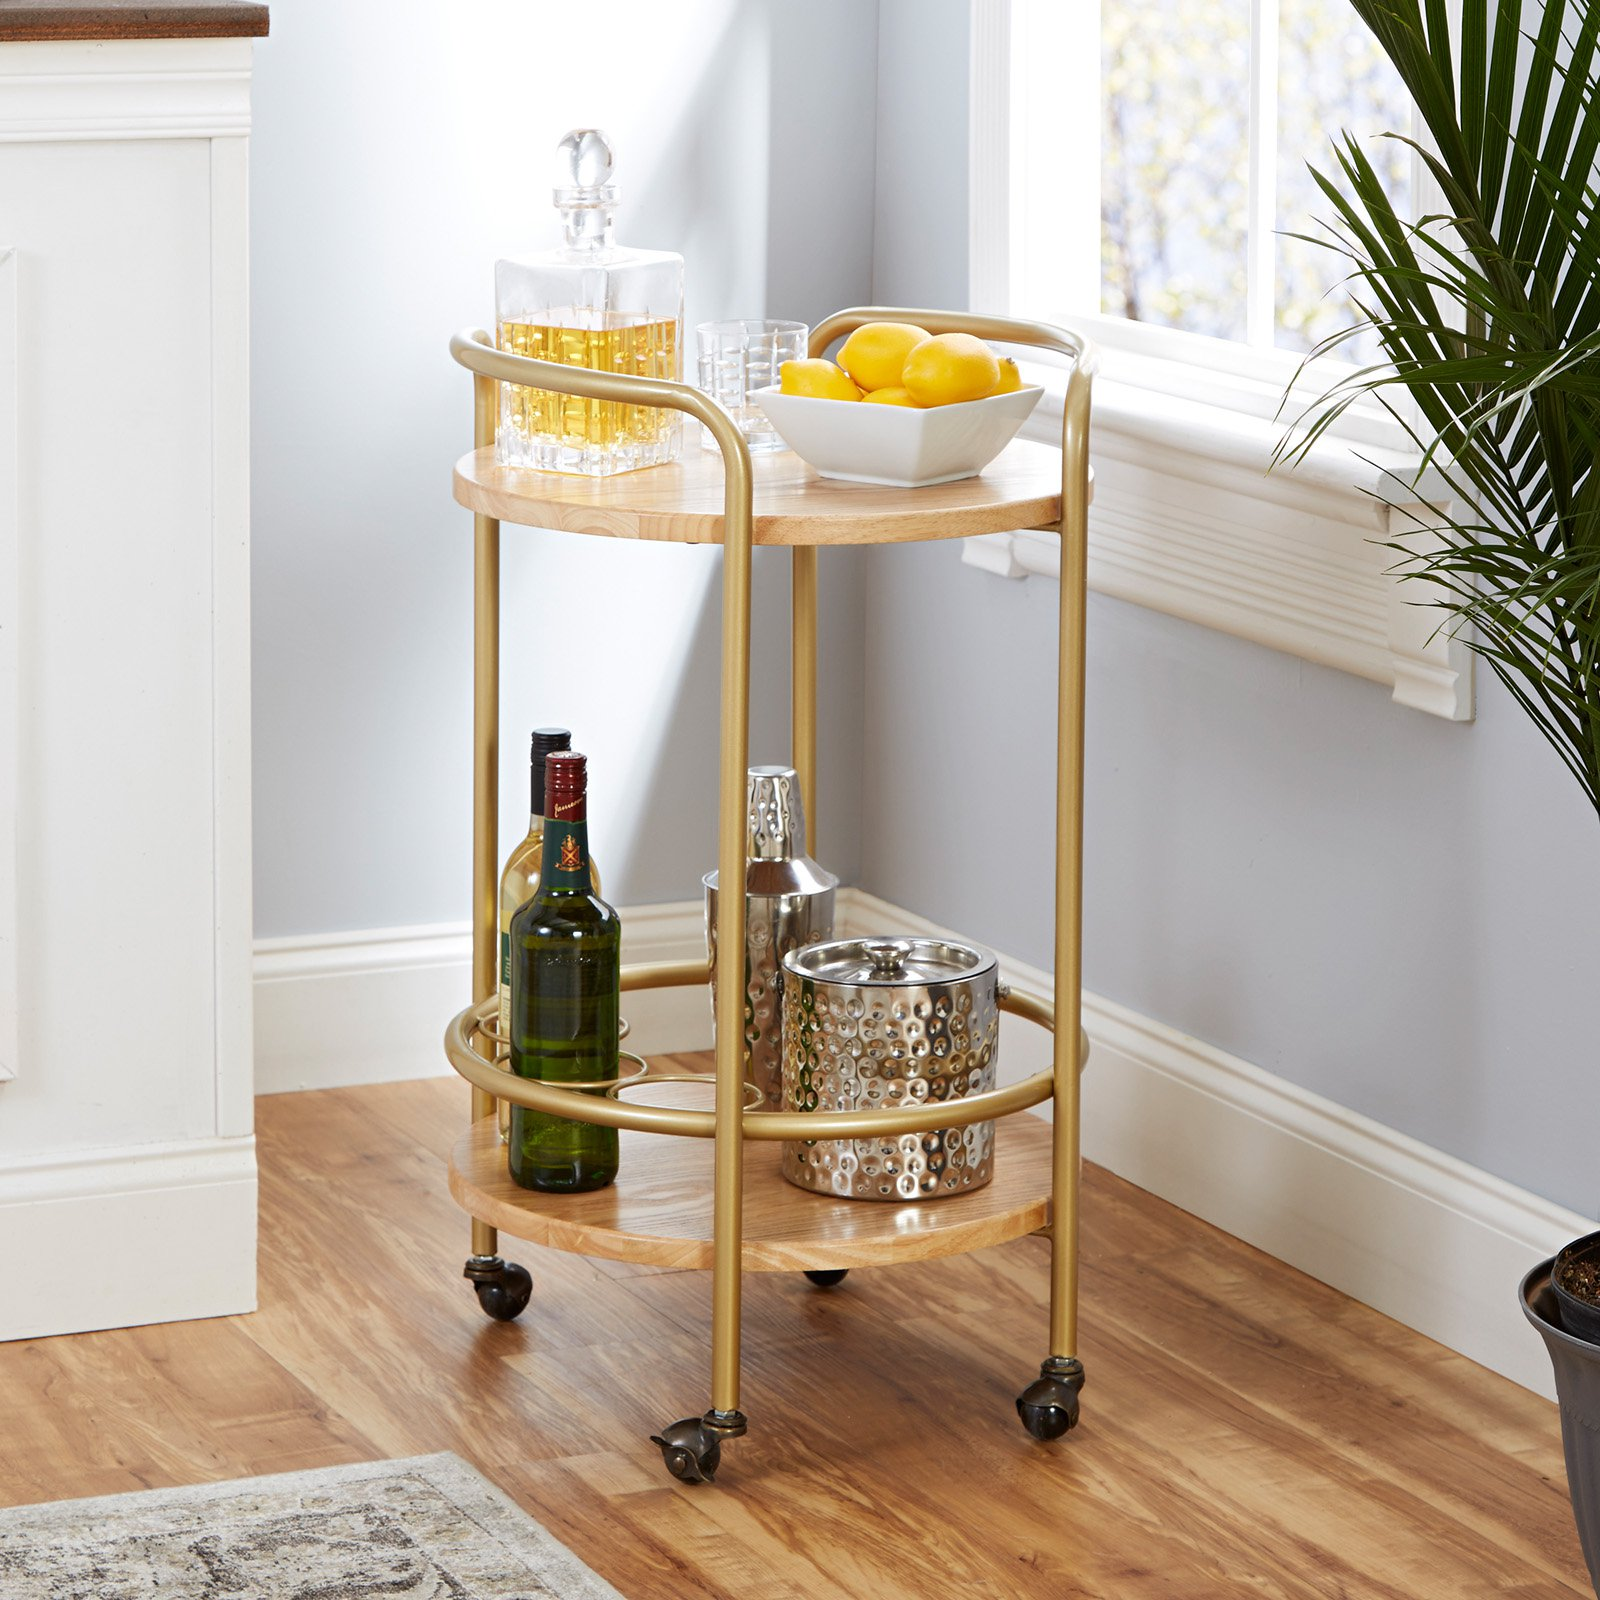 London Round Two-Tier Wood and Iron Bar Cart with Handles